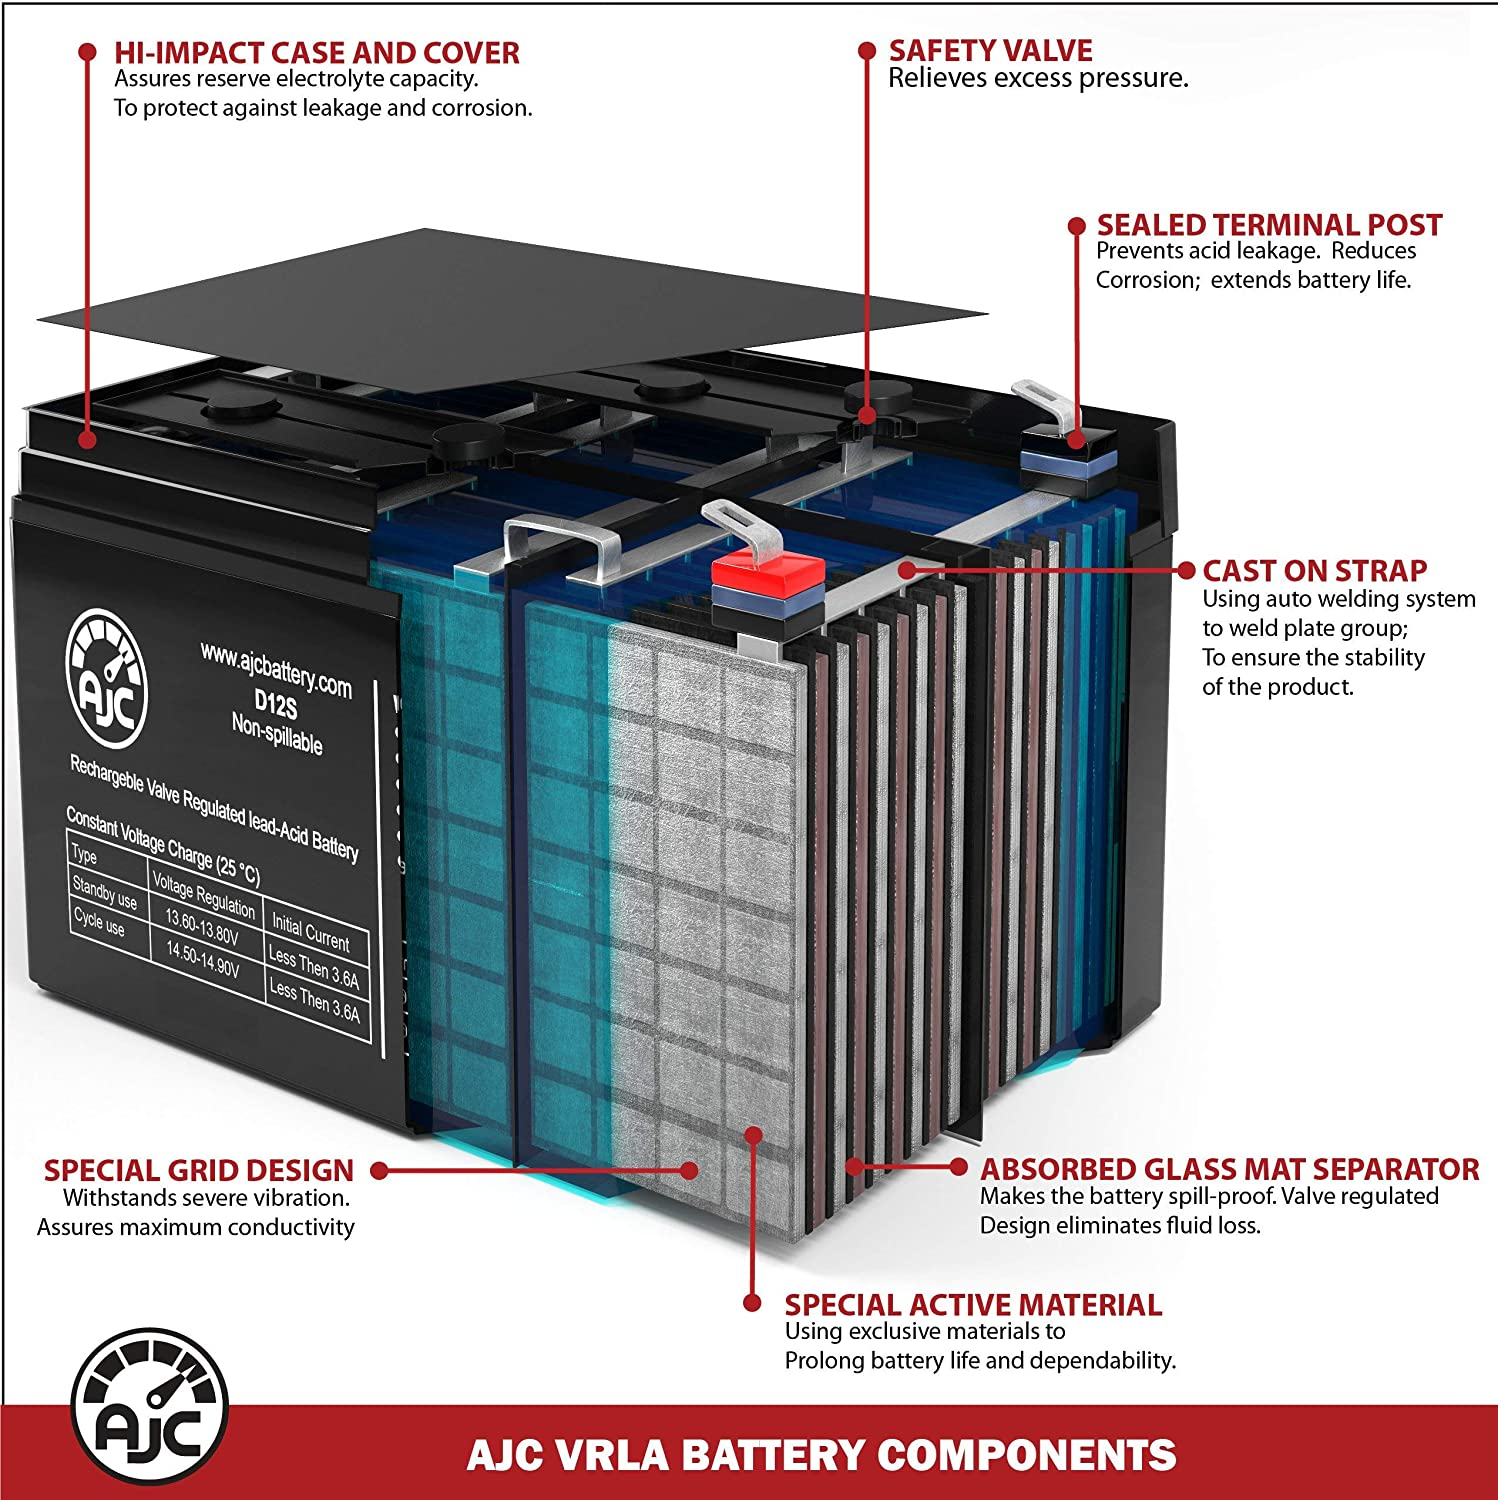 Eaton Evolution 650 VA 1U EVLL650R-1U 6V 7Ah UPS Battery This is an AJC Brand Replacement